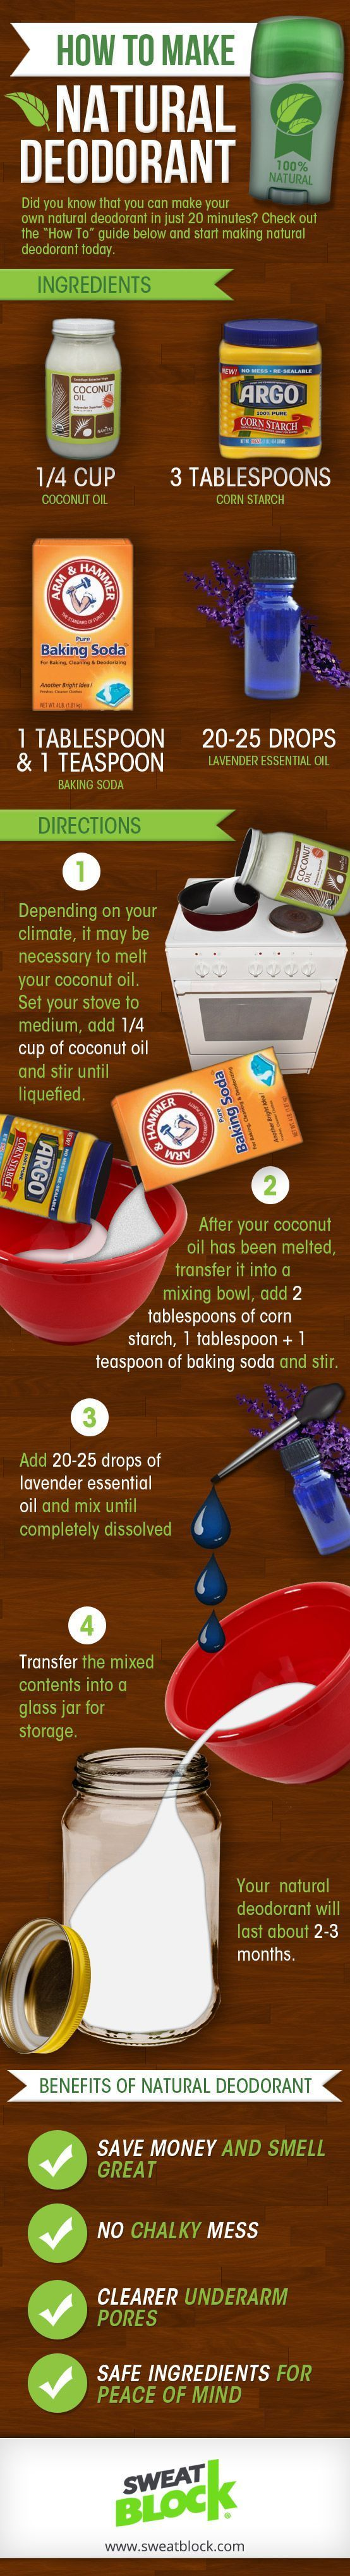 """Did you know that you can make your own natural deodorant in just 20 minutes? Check out the """"How To"""" guide below and start making natural deodorant today. Sourc"""